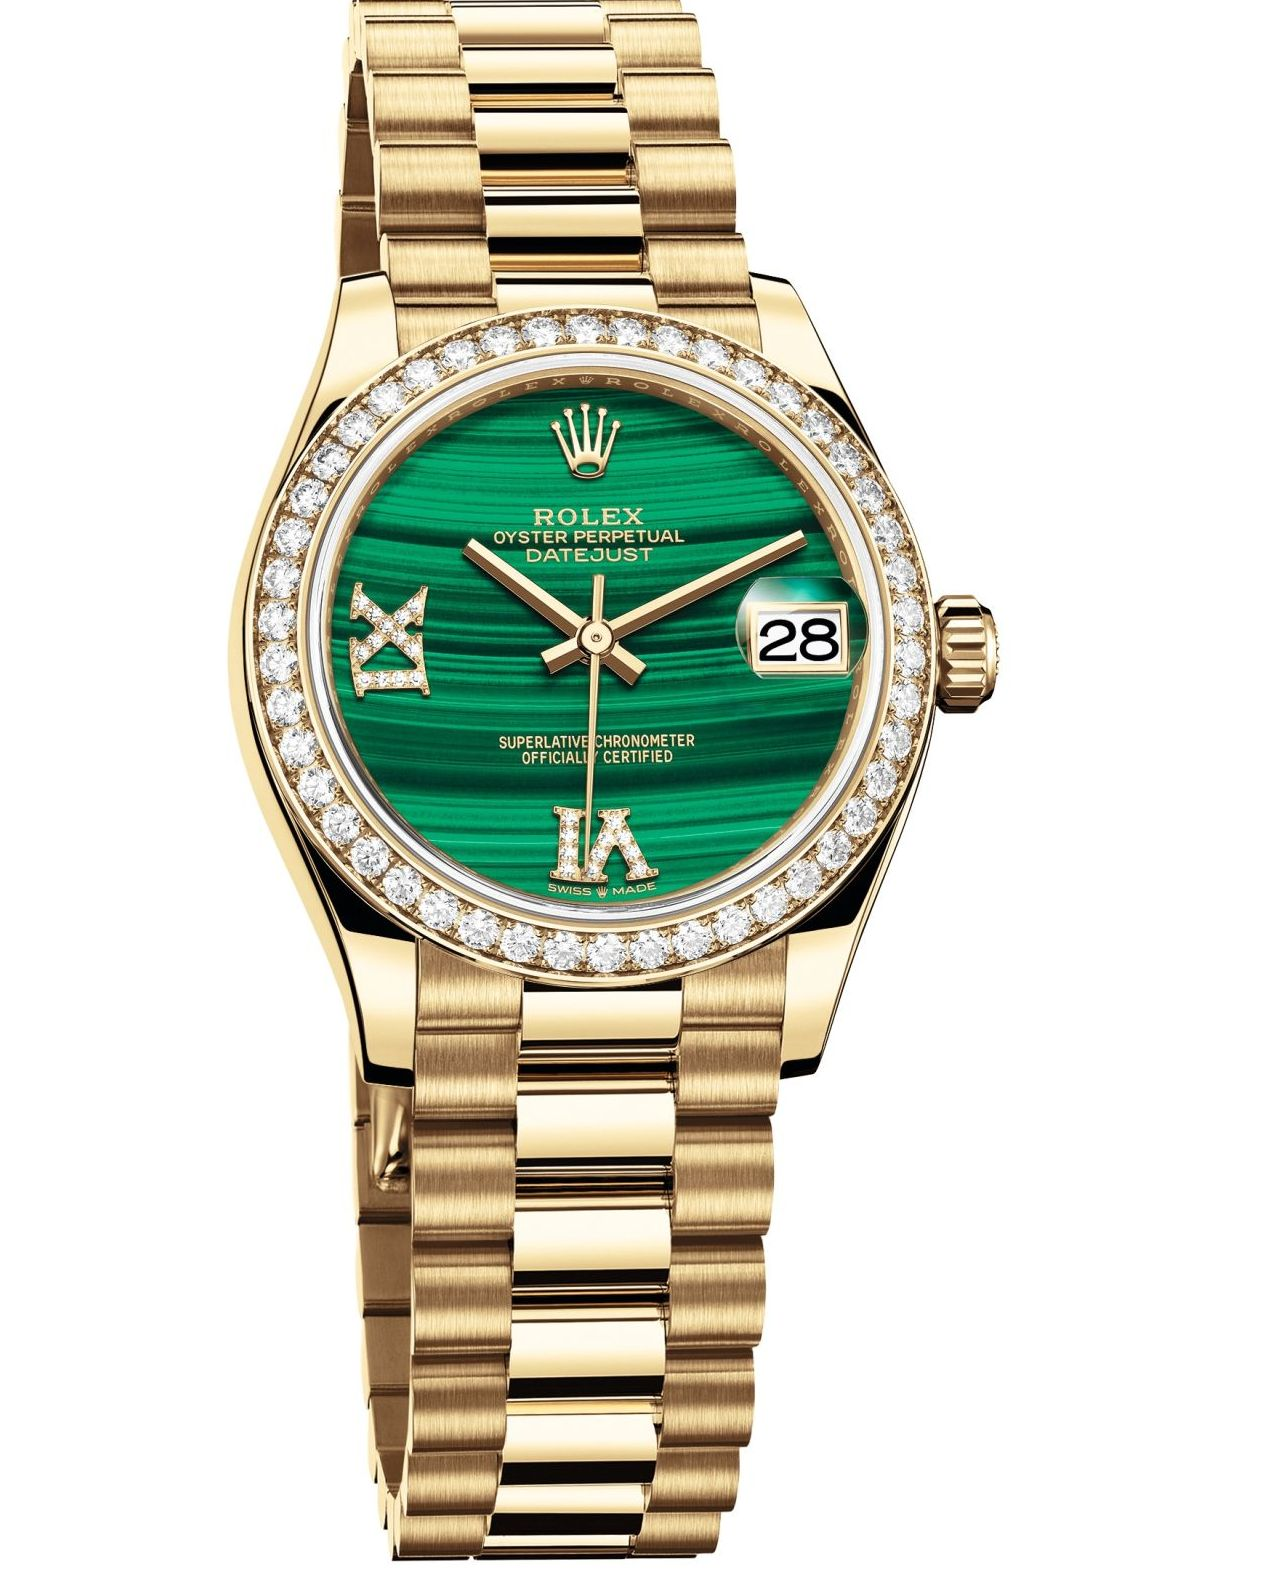 7854e322a15 Rolex Oyster Perpetual Datejust 31 – New Versions in White